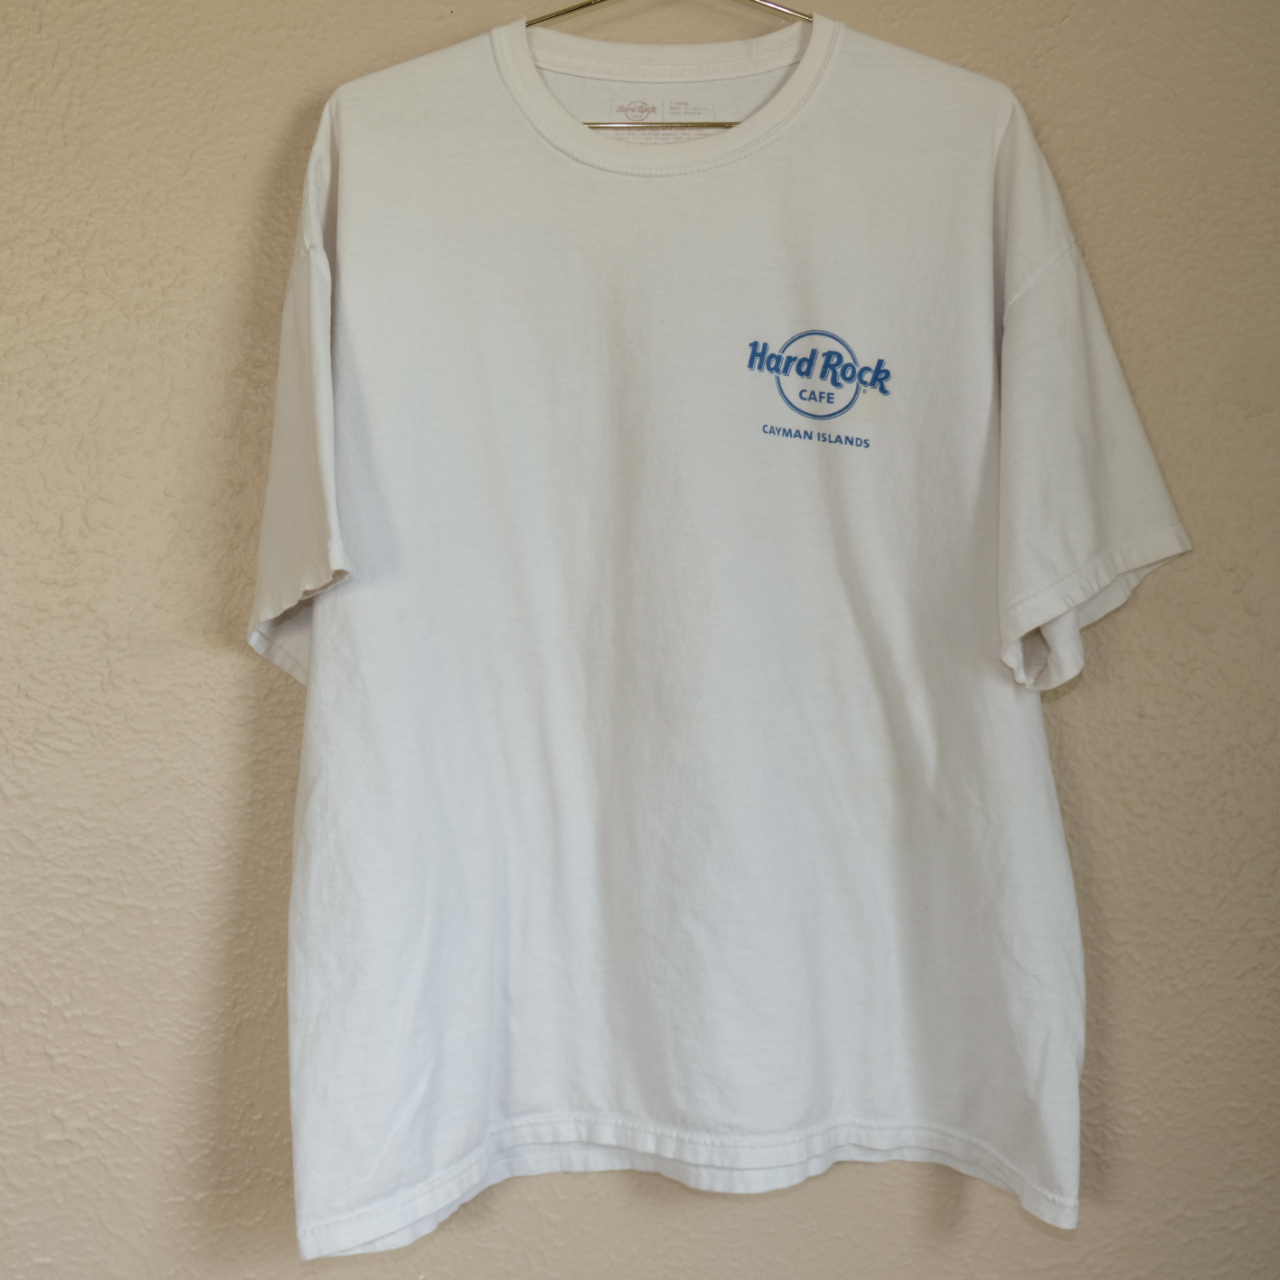 Product Image 1 - Pre-Loved Hard Rock Cafe Cayman